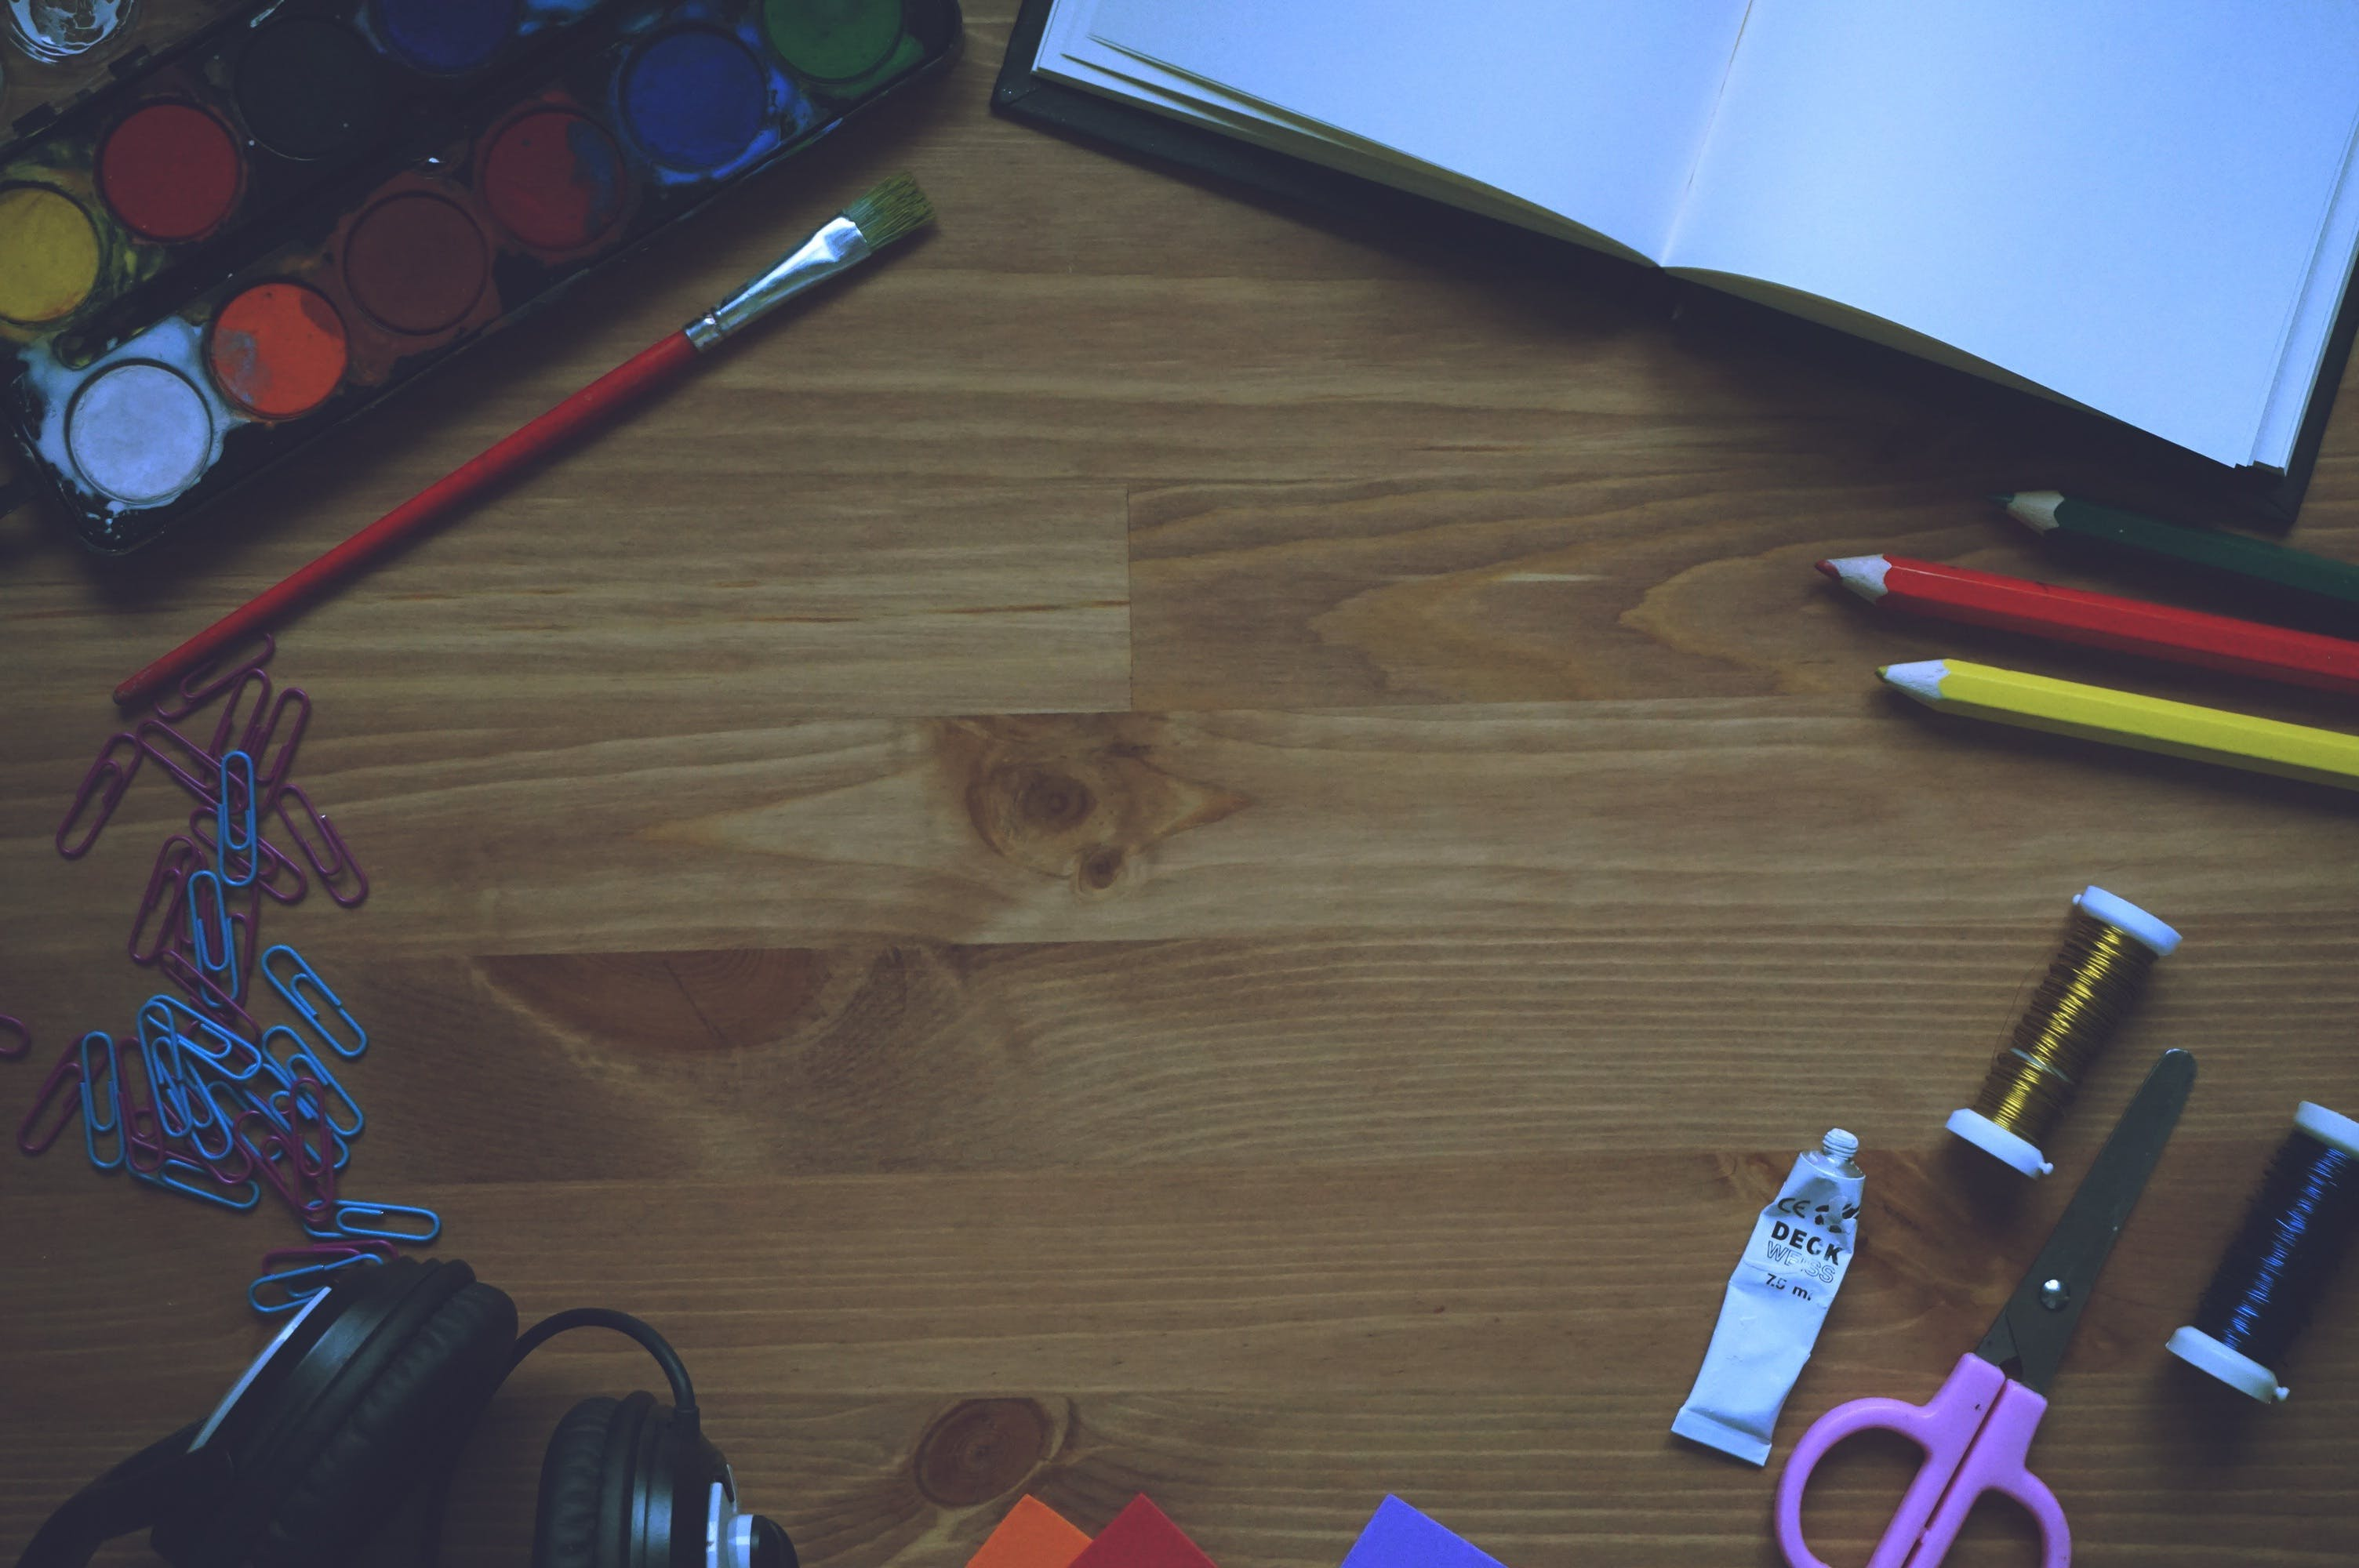 Artwork Materials on Wooden Table